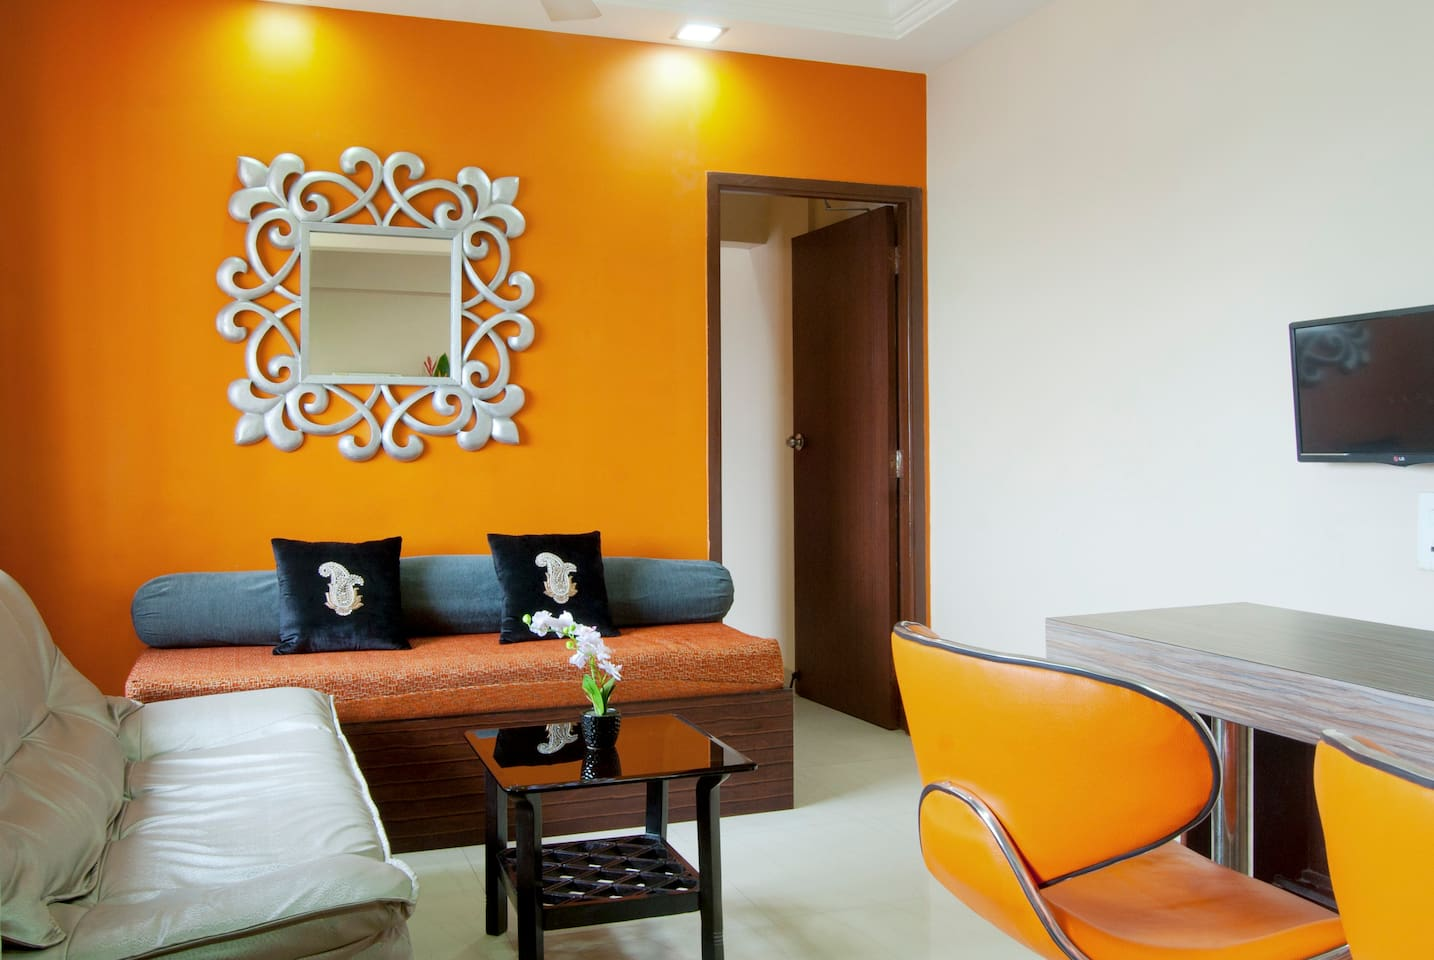 Colurful, bright Living room with an eat-in kitchen dining coounter,  & flat screen TV